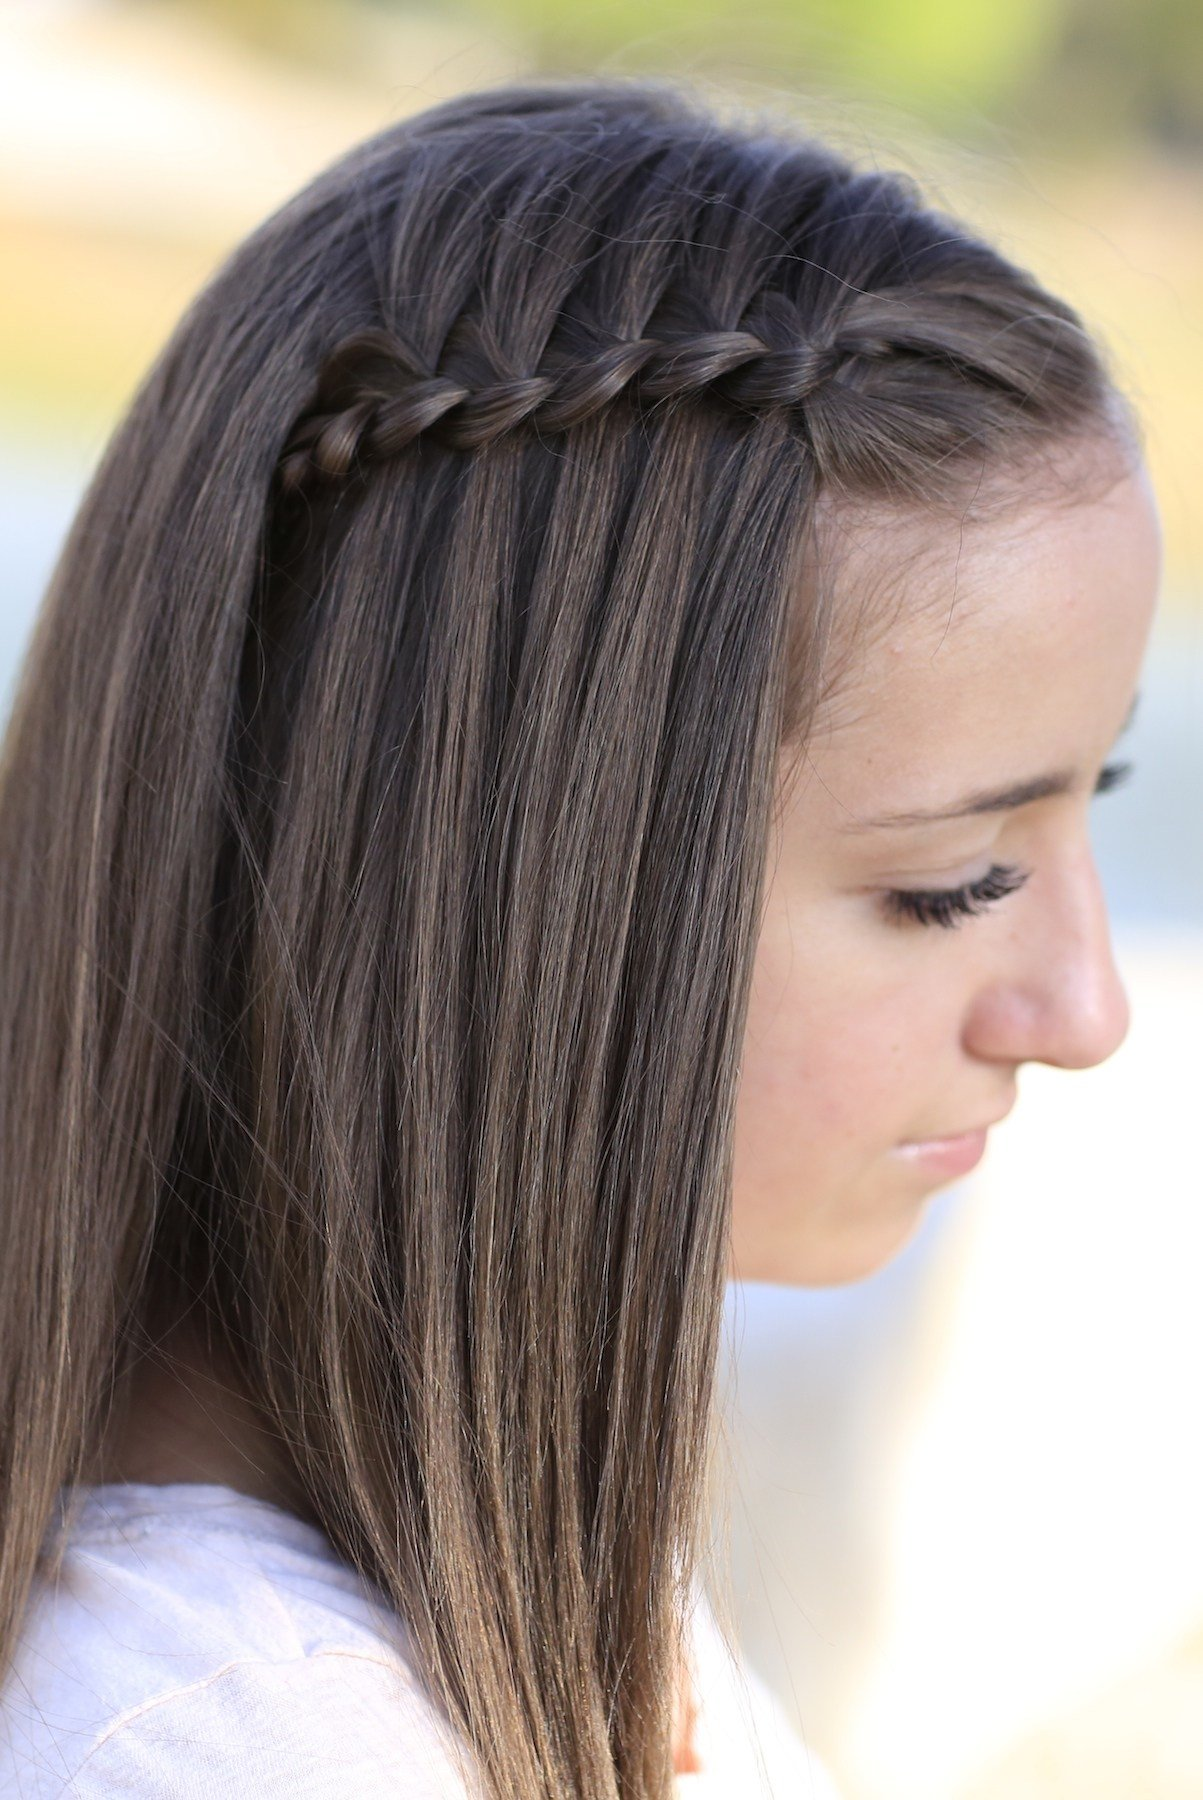 New Top 10 Hairstyles For 12 Year Old Girls Hair Style And Ideas With Pictures Original 1024 x 768